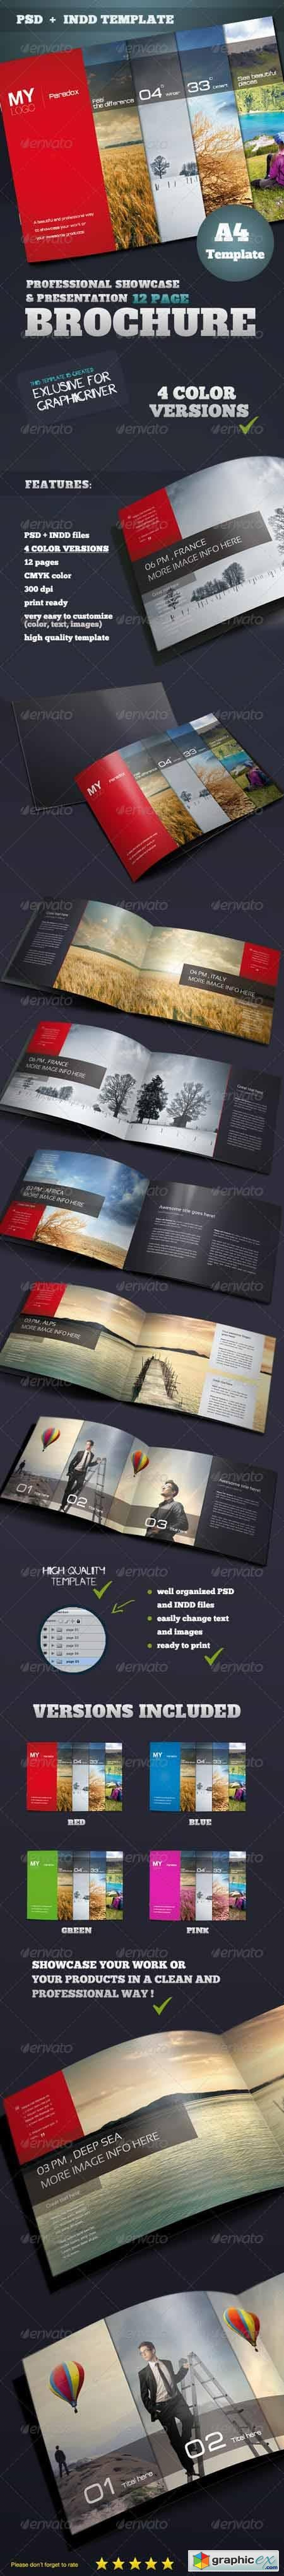 Portfolio & Showcase Brochure 3408227